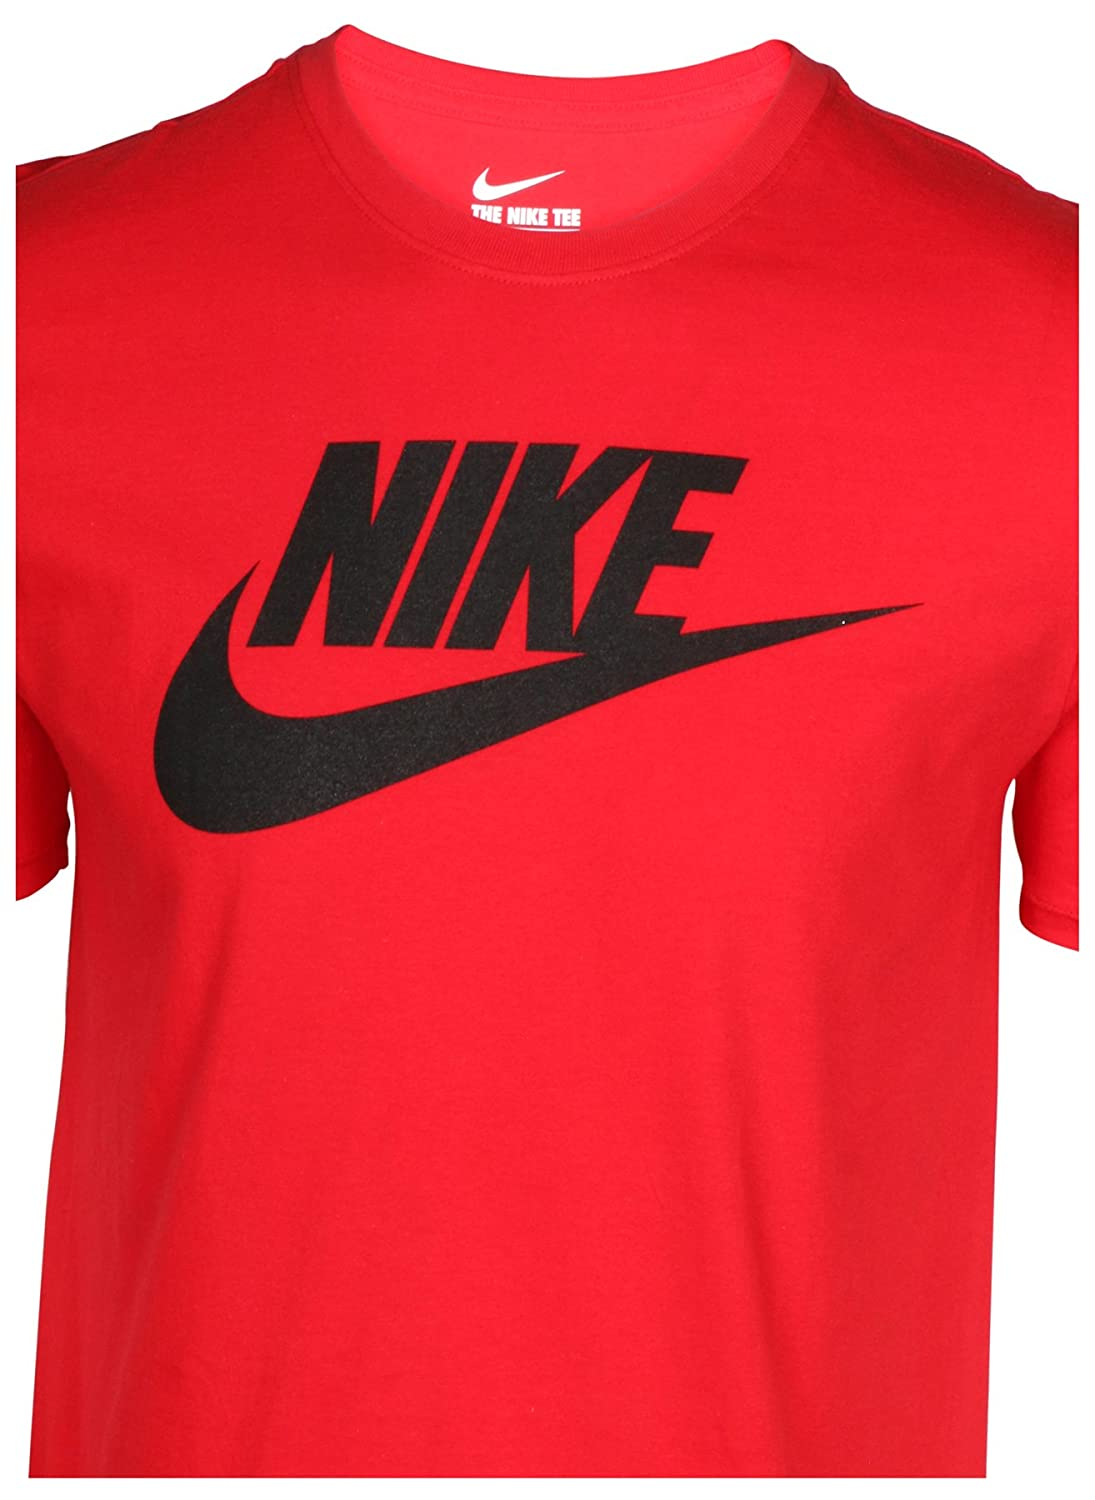 finest selection 19042 7132d Nike Air T Shirt Mens Jd